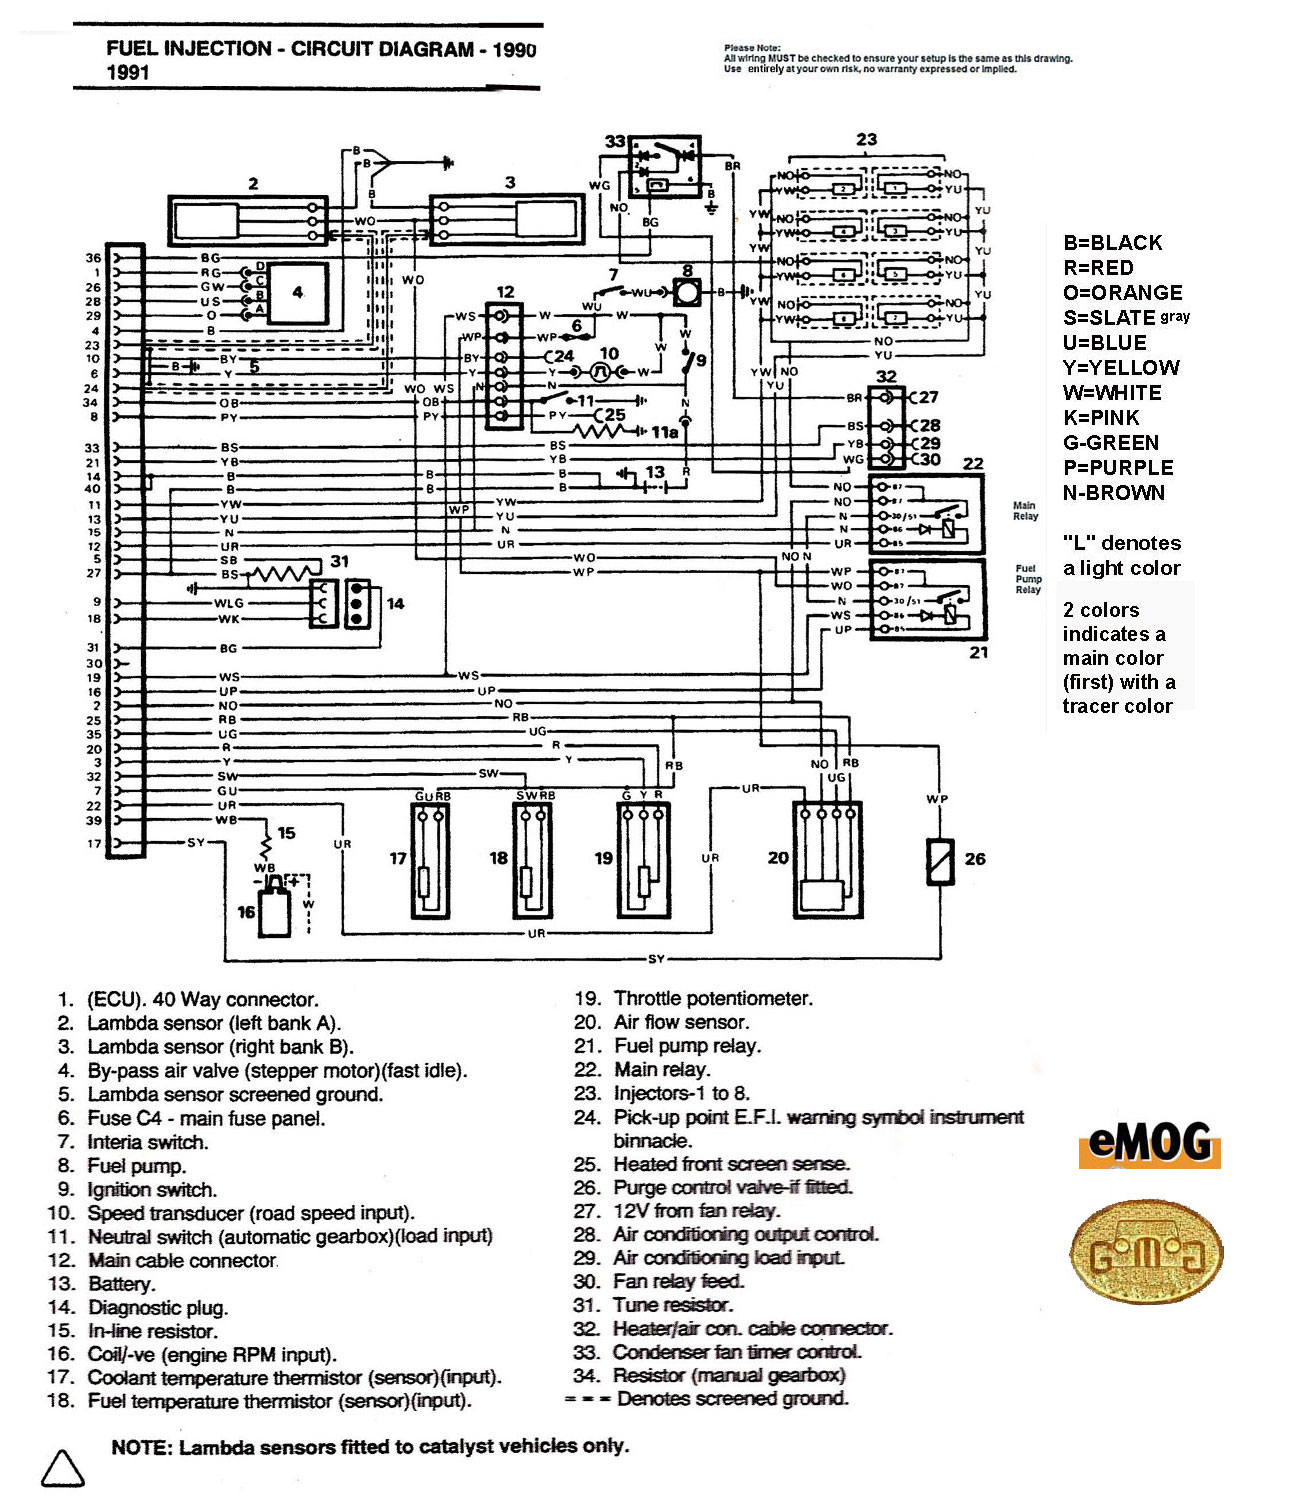 HotWireEfiWiring morgan electrical vita spa l200 wiring diagram at gsmportal.co